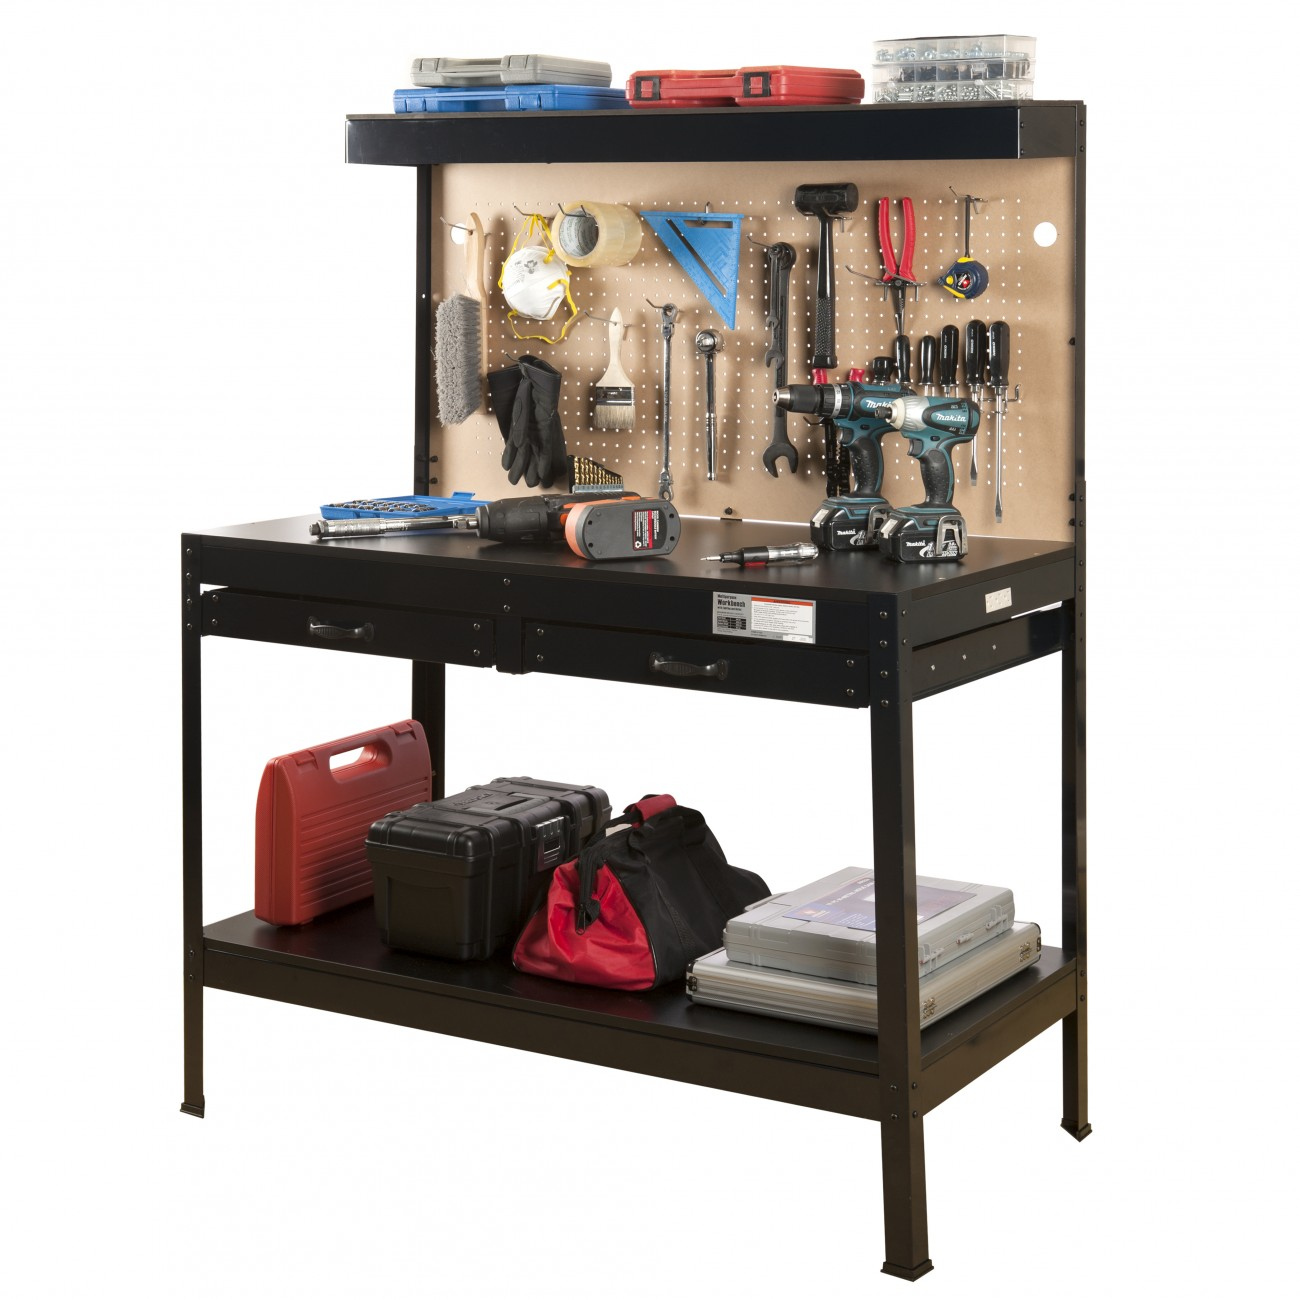 Hiltex Steel Garage Workbench | Multi-purpose LED Cabinet Lighting Power Socket Drawers